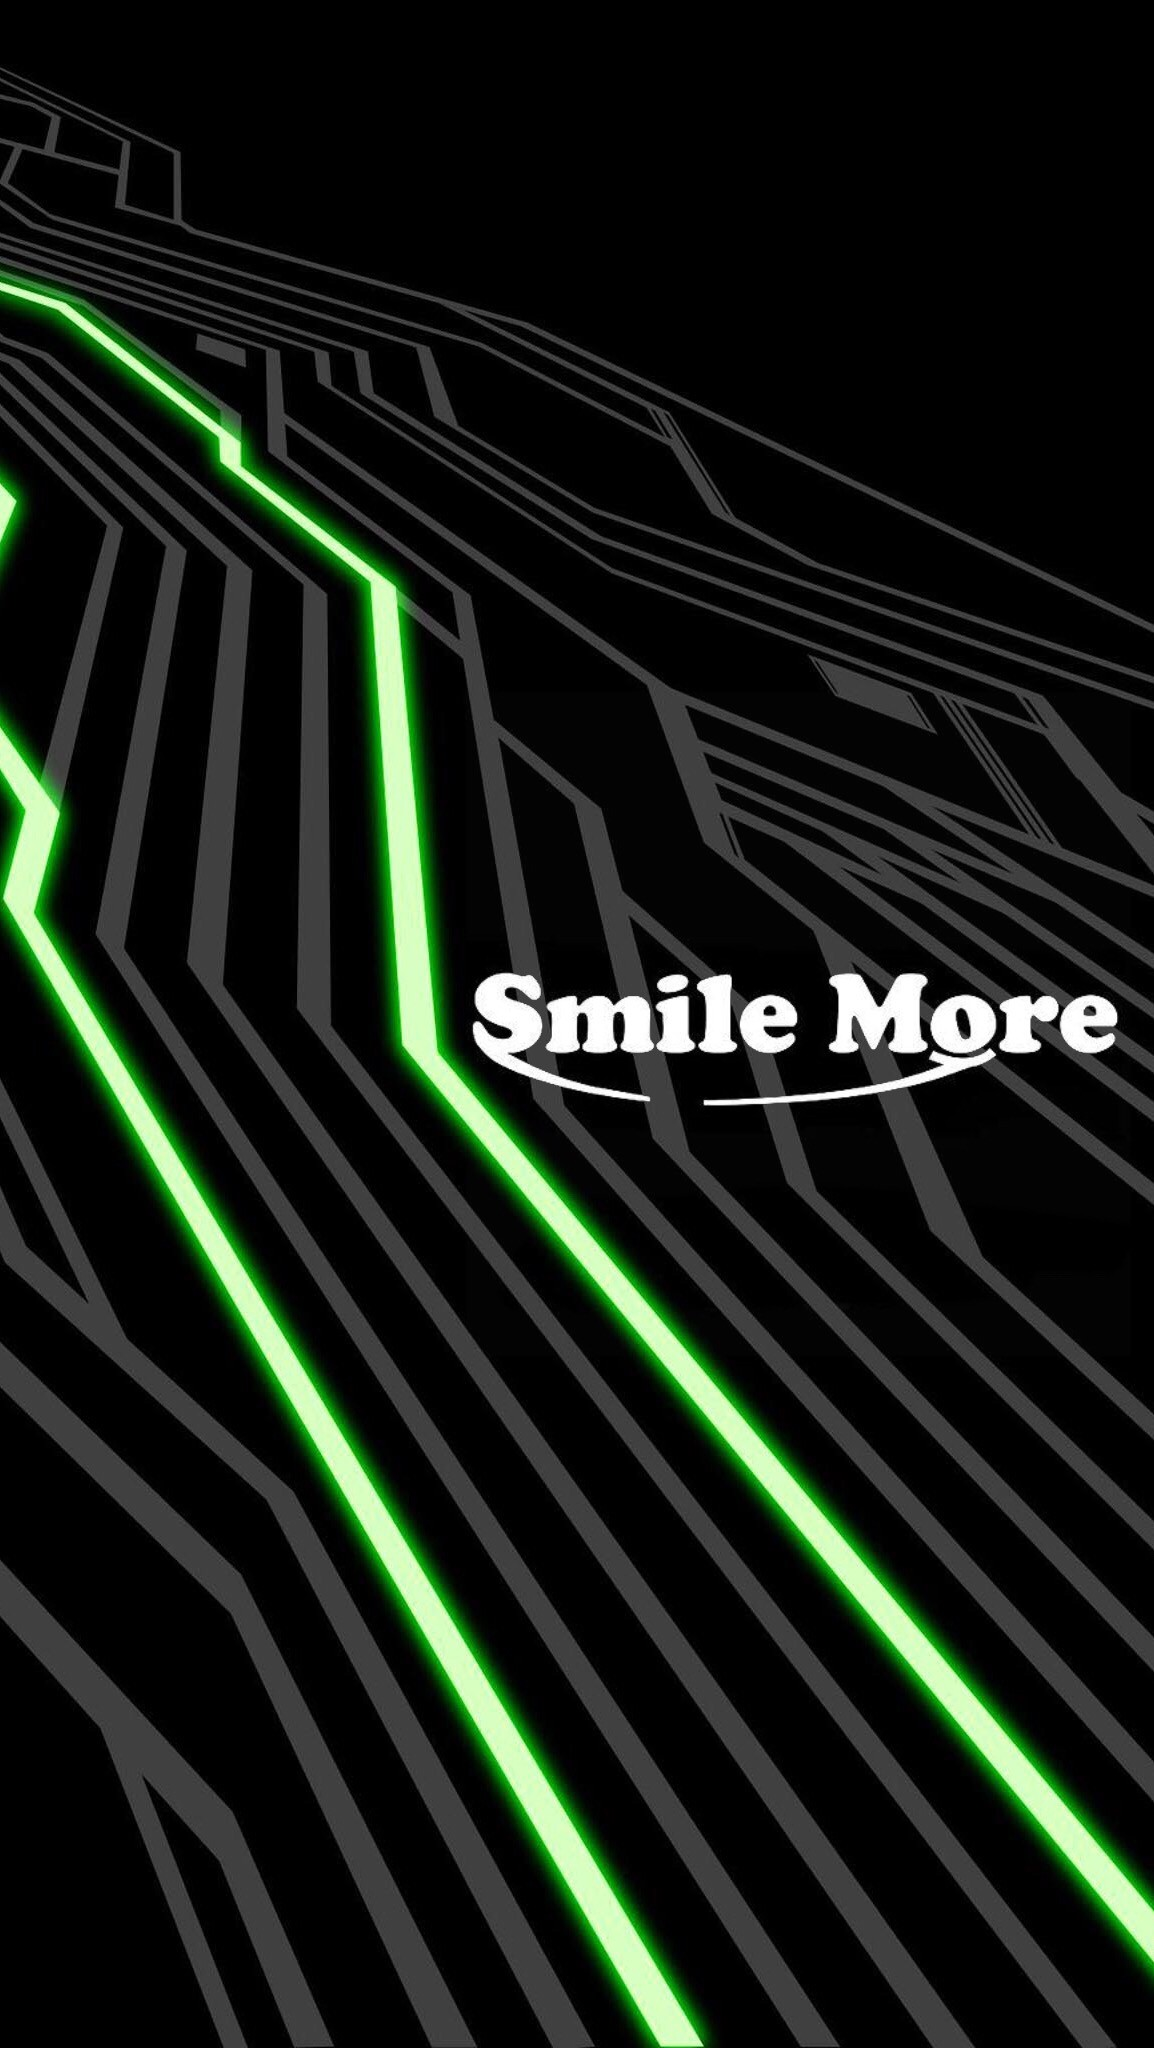 Smile More #romanatwood #smilemore #iphone #wallpapers